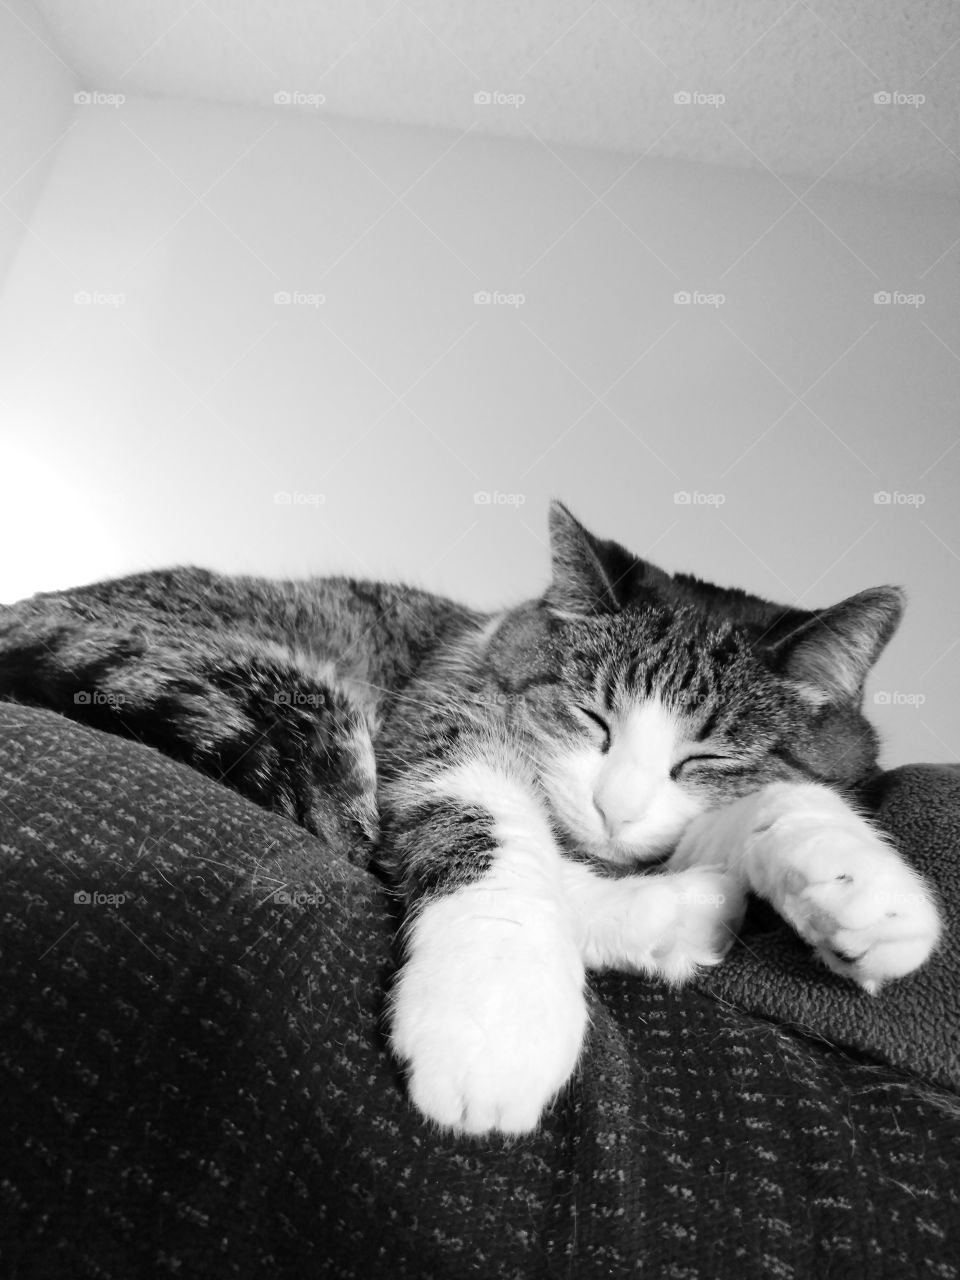 Black and white photo of a sleeping kitty in the city.